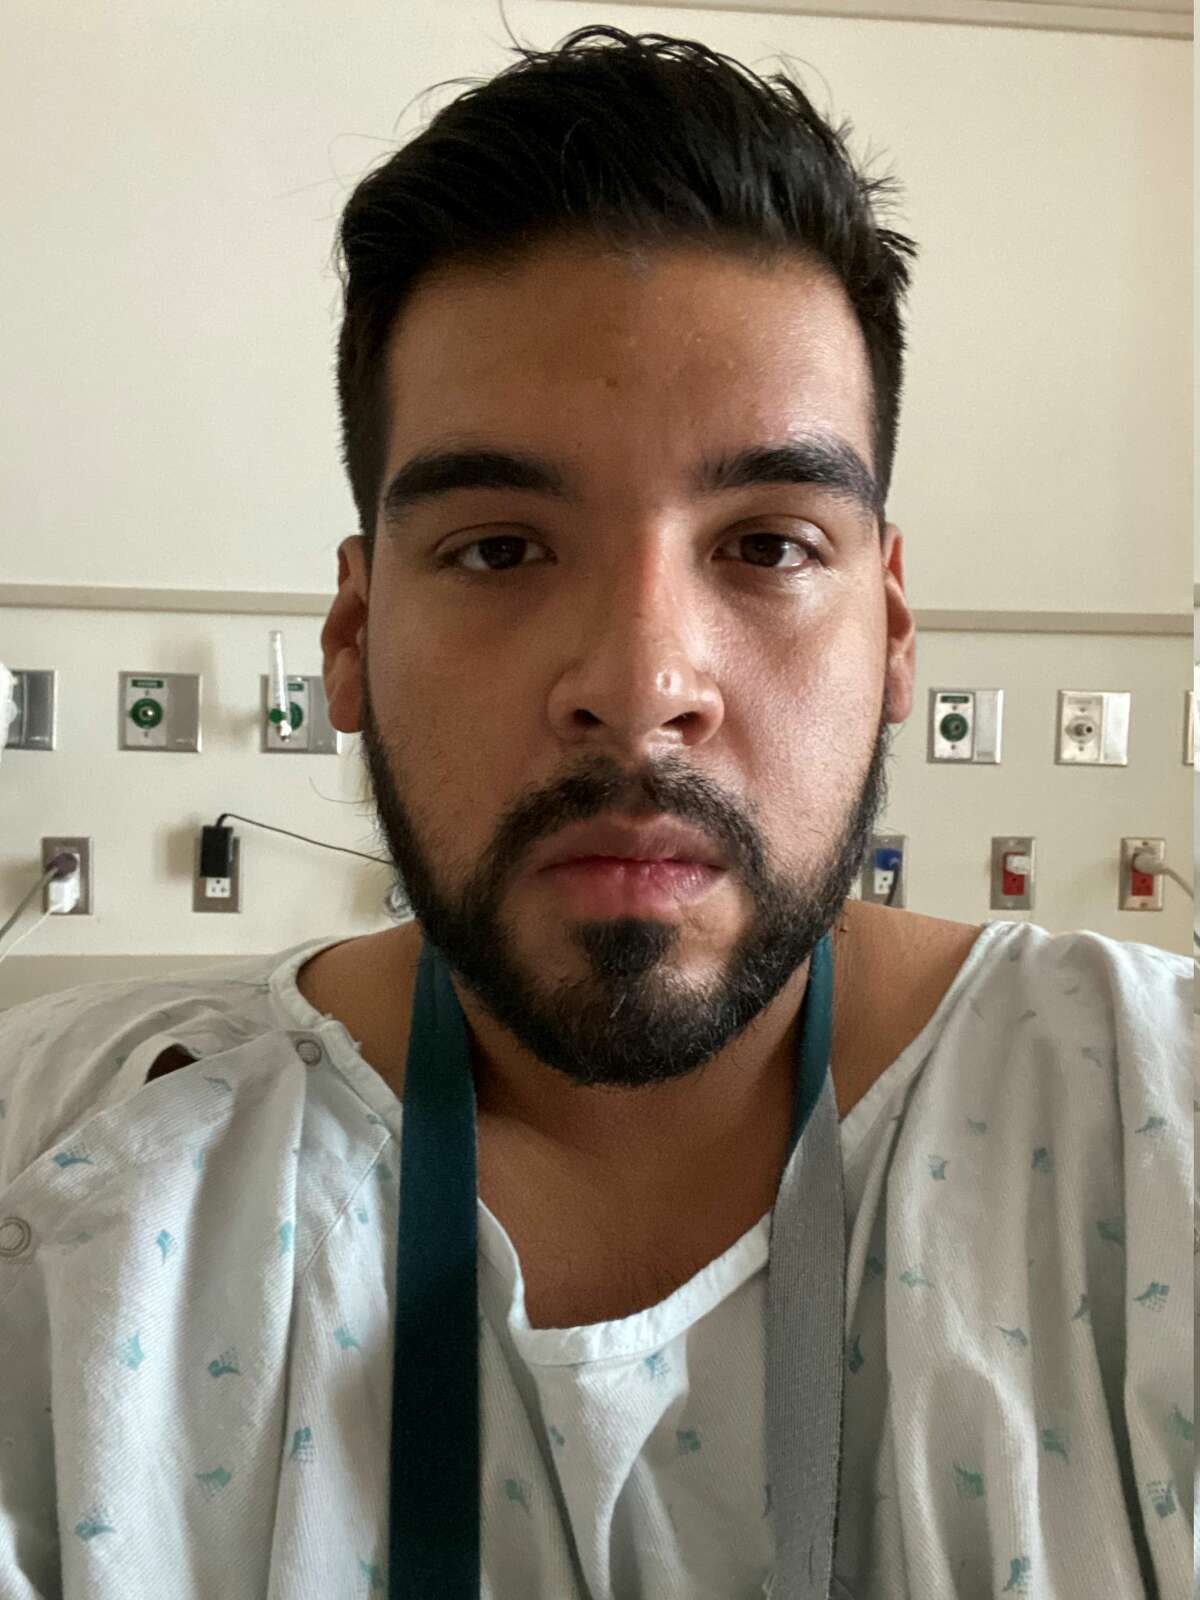 Once at Houston Methodist, Perez said he went to the emergency room, where they took X-rays and gave him another test that came back positive for COVID-19 within a few hours.